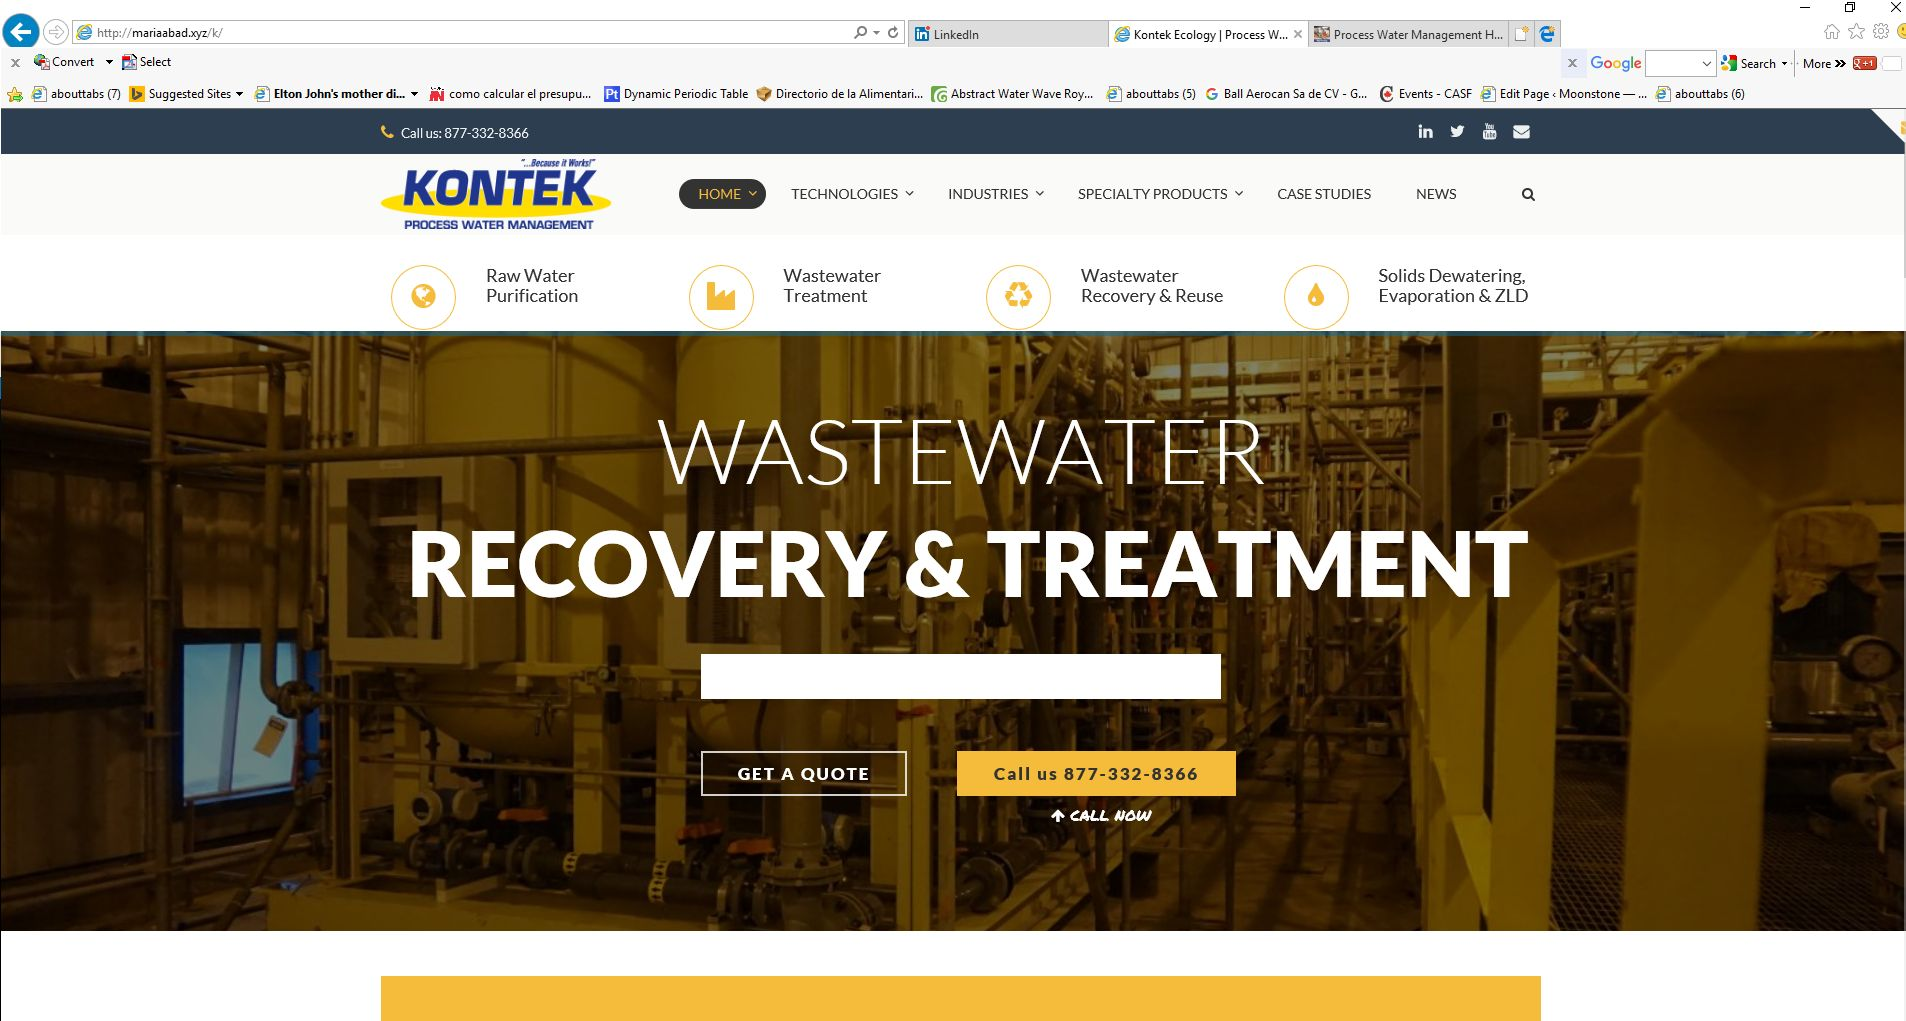 Kontek indicial website optimization  – Main offering